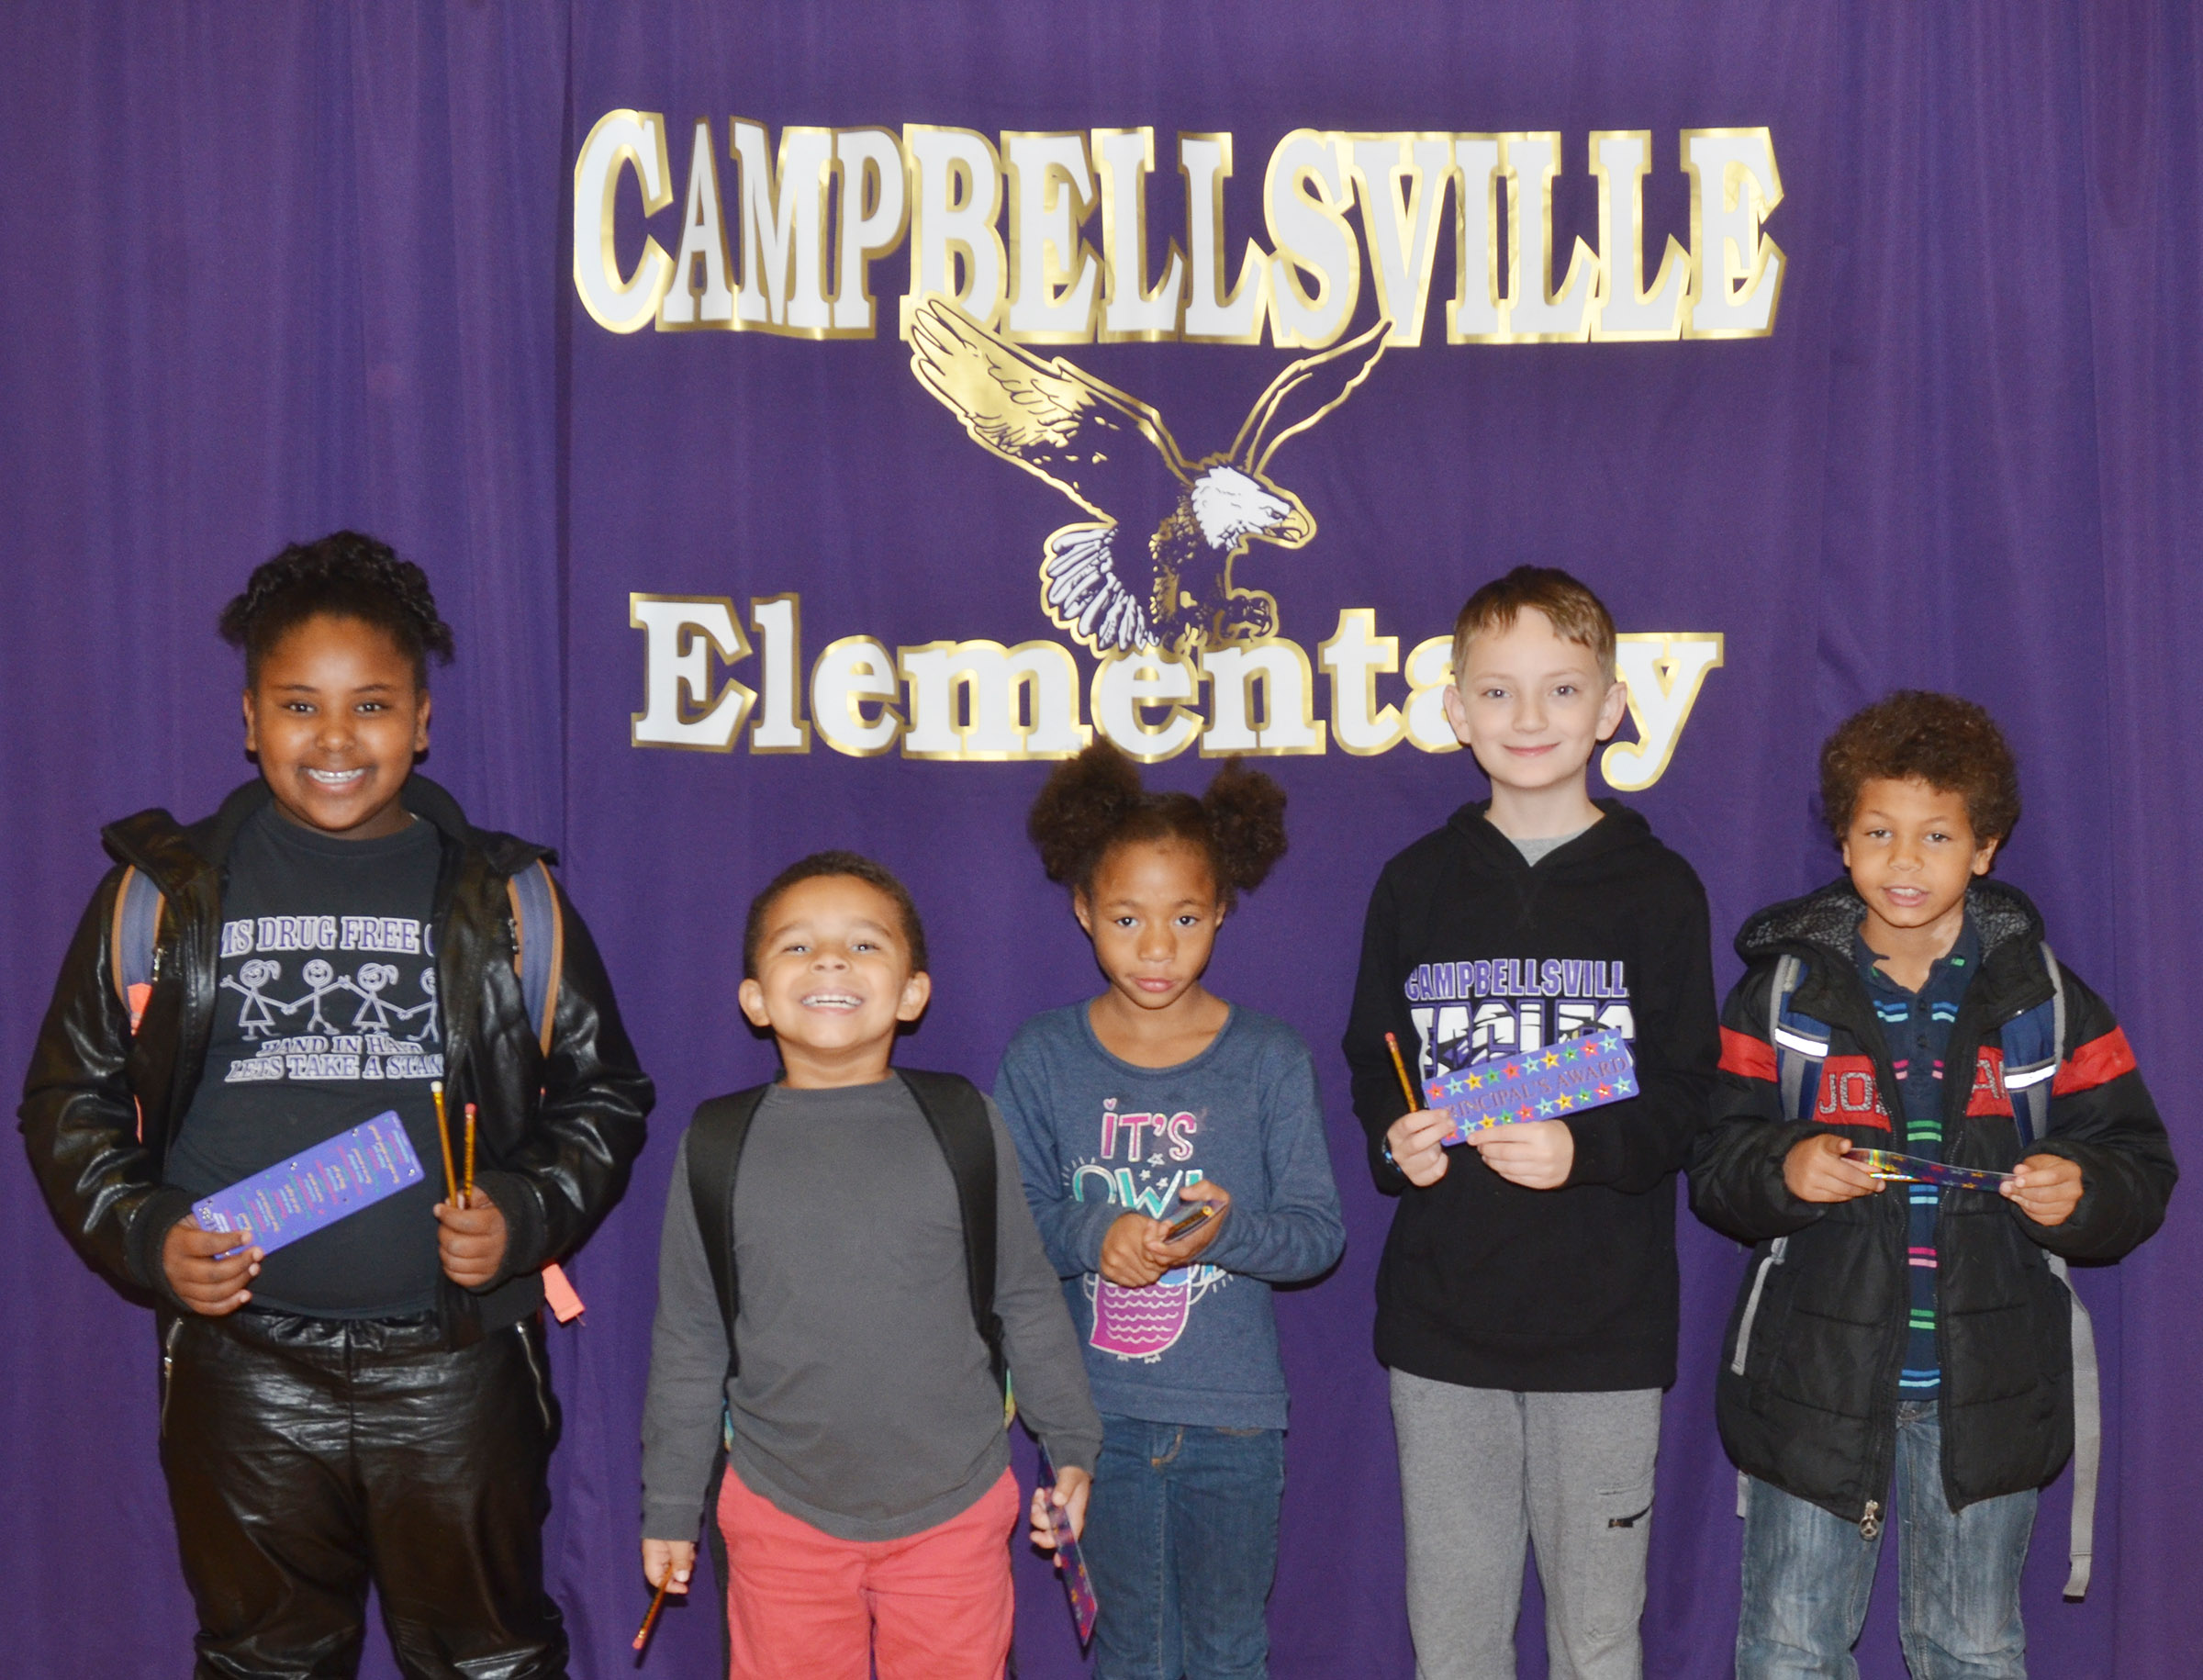 From left are third-grader Ajada Smith, kindergartener Tyrek Moore, first-grader Brea Miller, fifth-grader Noah Leachman and second-grader Tristen Williams. Absent from the photo is fourth-grader ReAnna Jeffries.